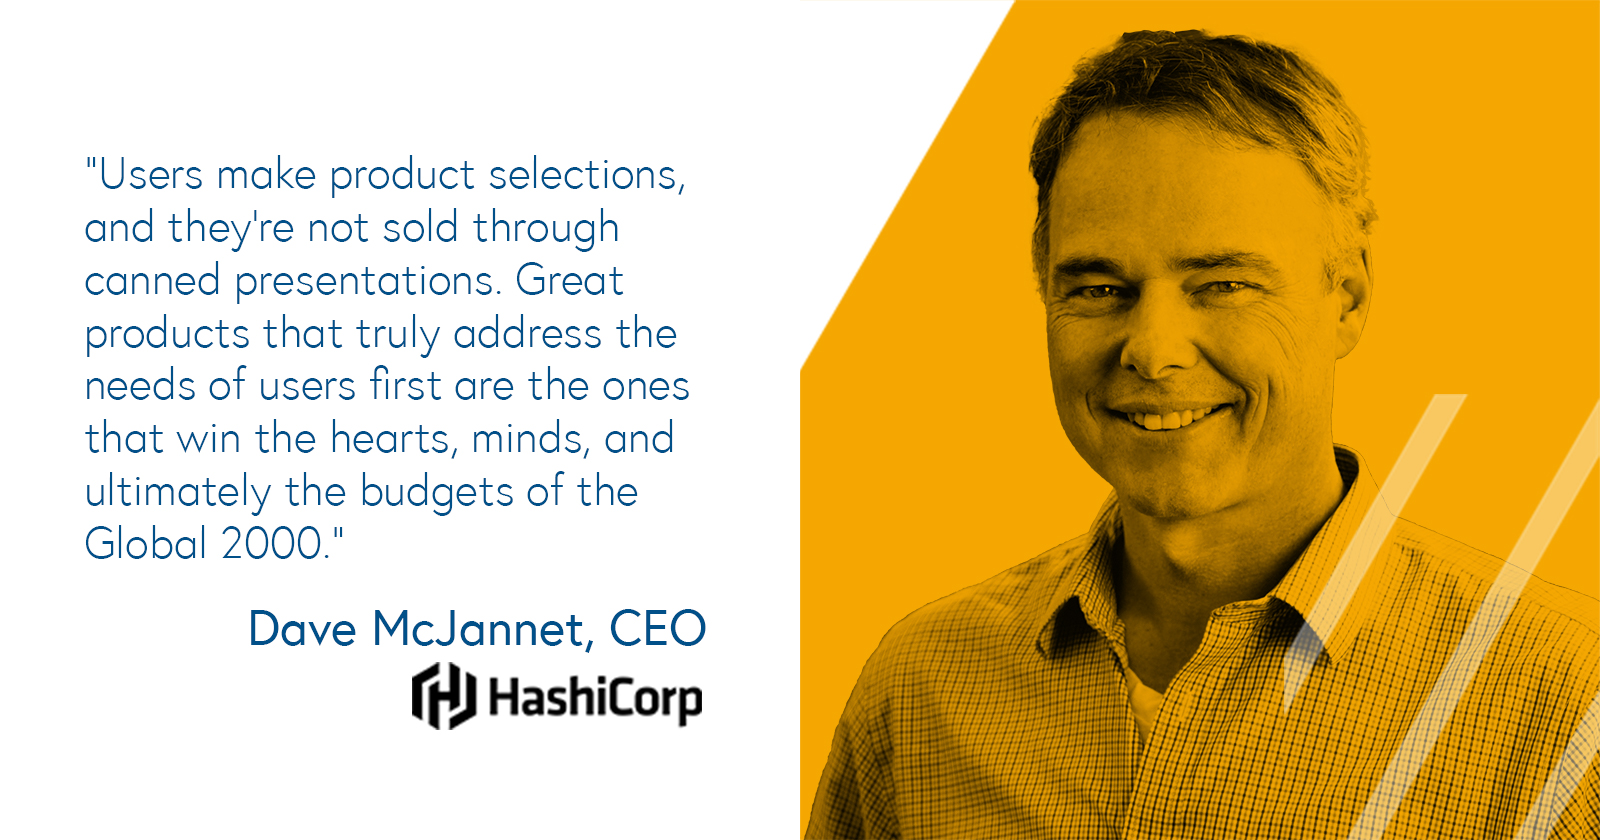 Dave McJannet, CEO of HashiCorp on building great user-centric products